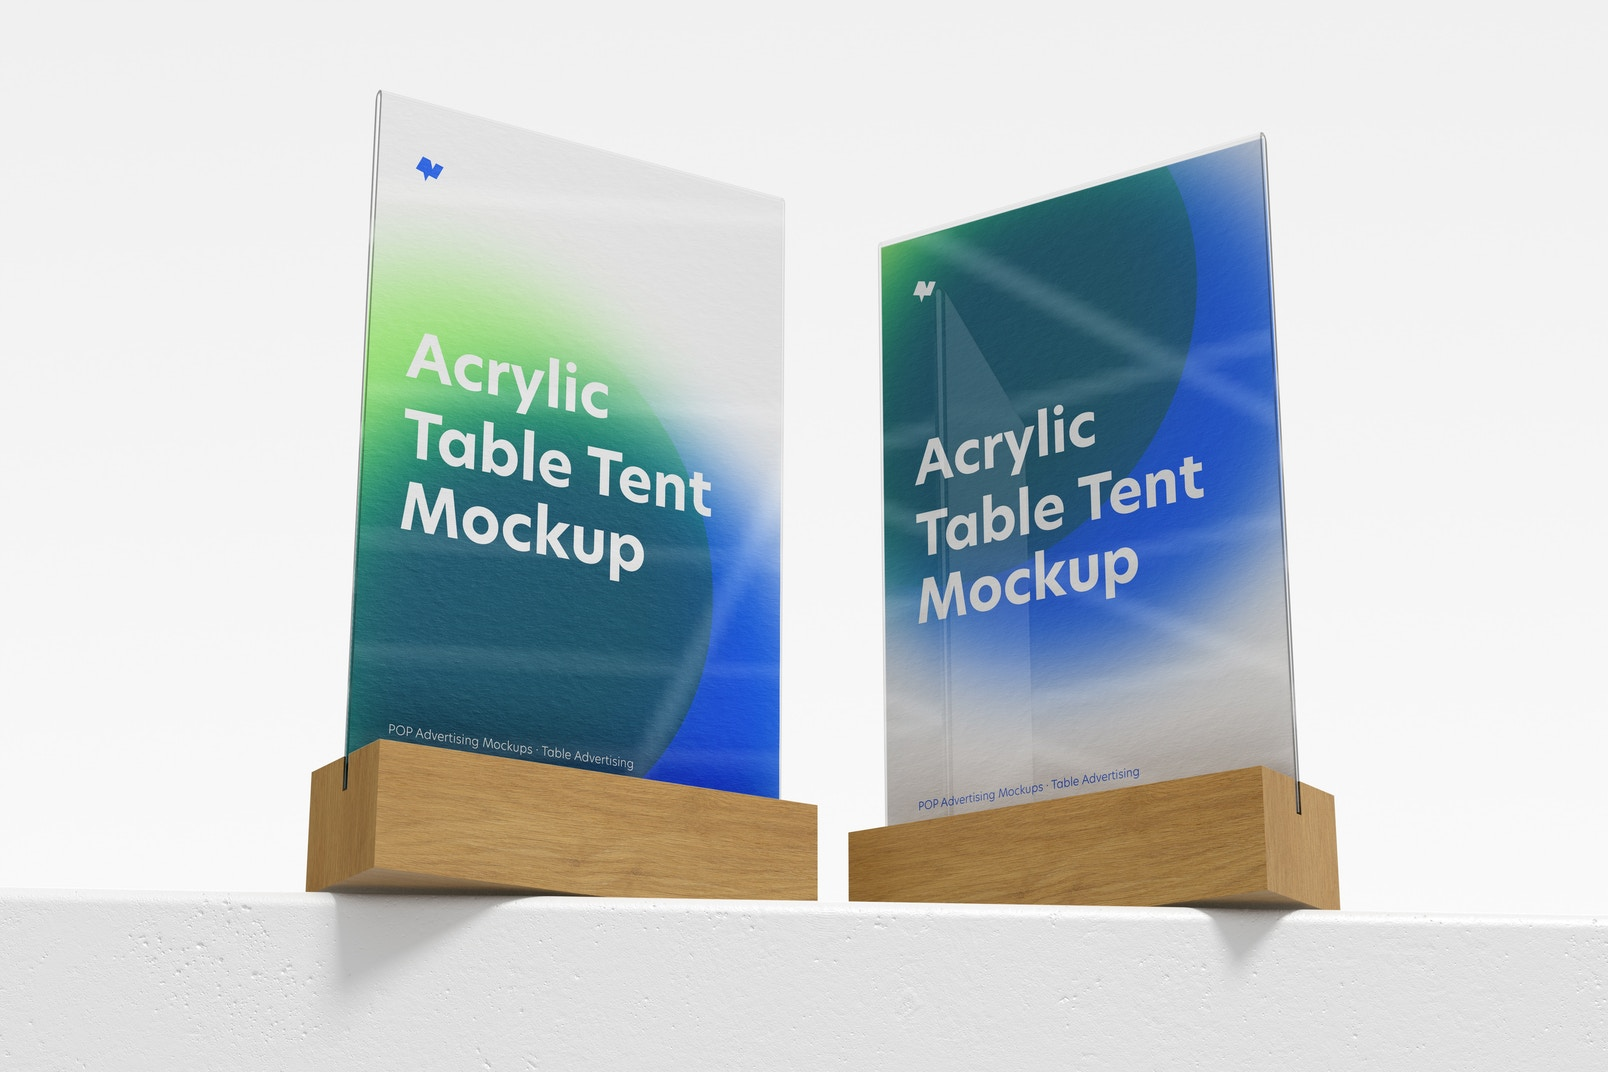 Acrylic Table Tents with Wood Base Mockup, Low Angle View